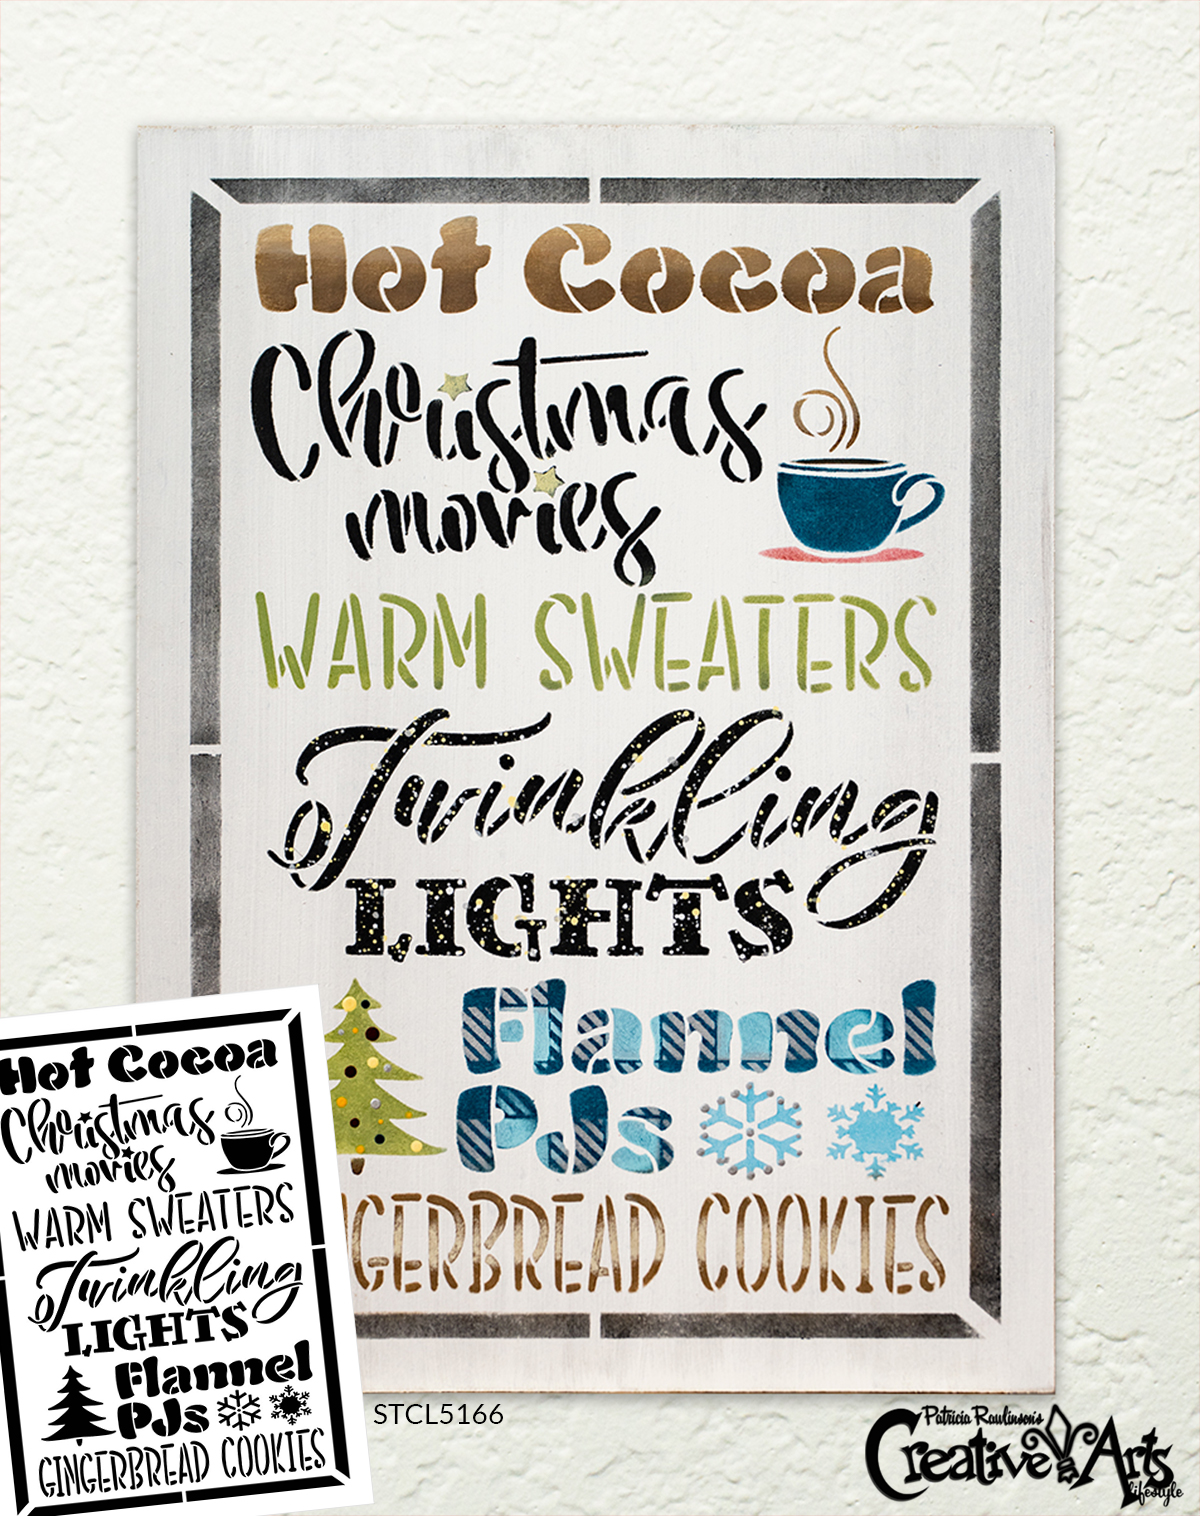 Hot Cocoa Christmas Movie Warm Sweater Stencil by StudioR12   DIY Holiday Home Decor   Craft & Paint Wood Sign   Reusable Mylar Template   Select Size